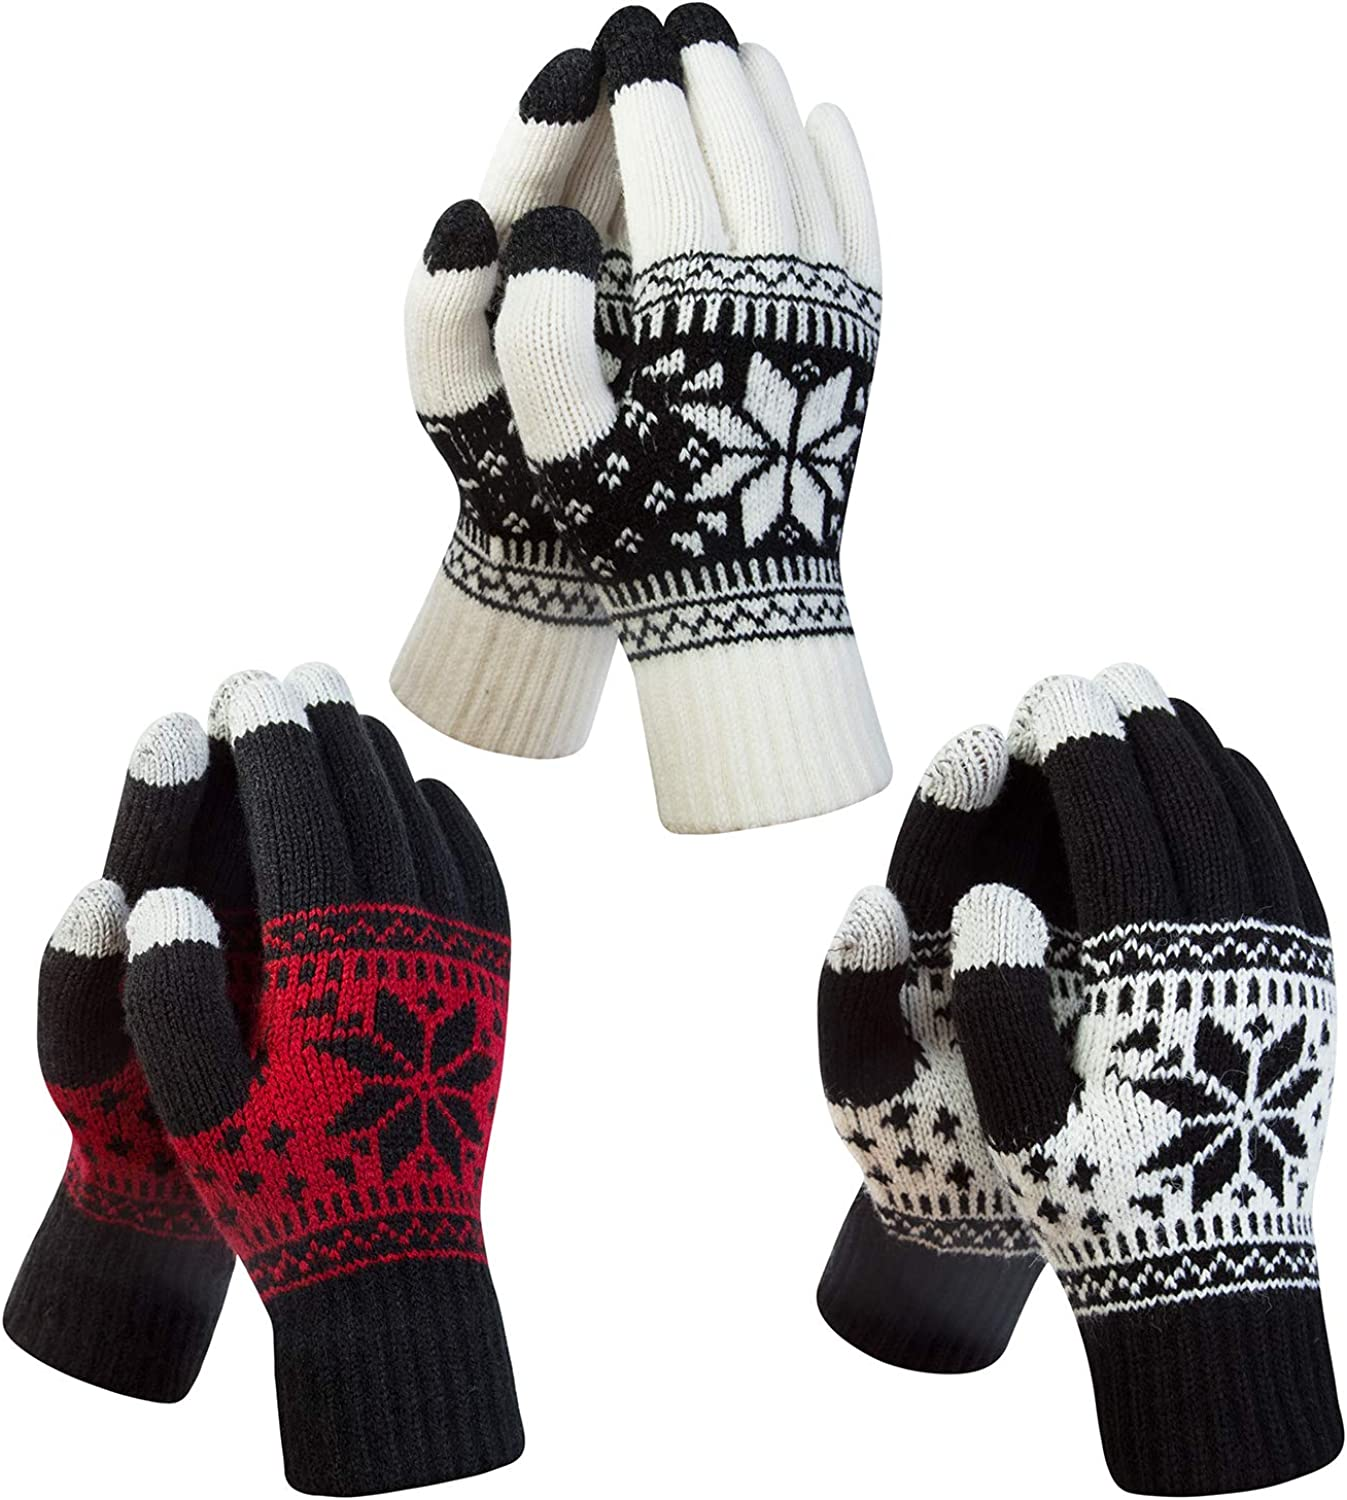 YSense 3 Pairs Touch Screen Gloves Snow Flower, Warm Knit Winter Gloves Christmas Gifts Stocking Stuffers for Women